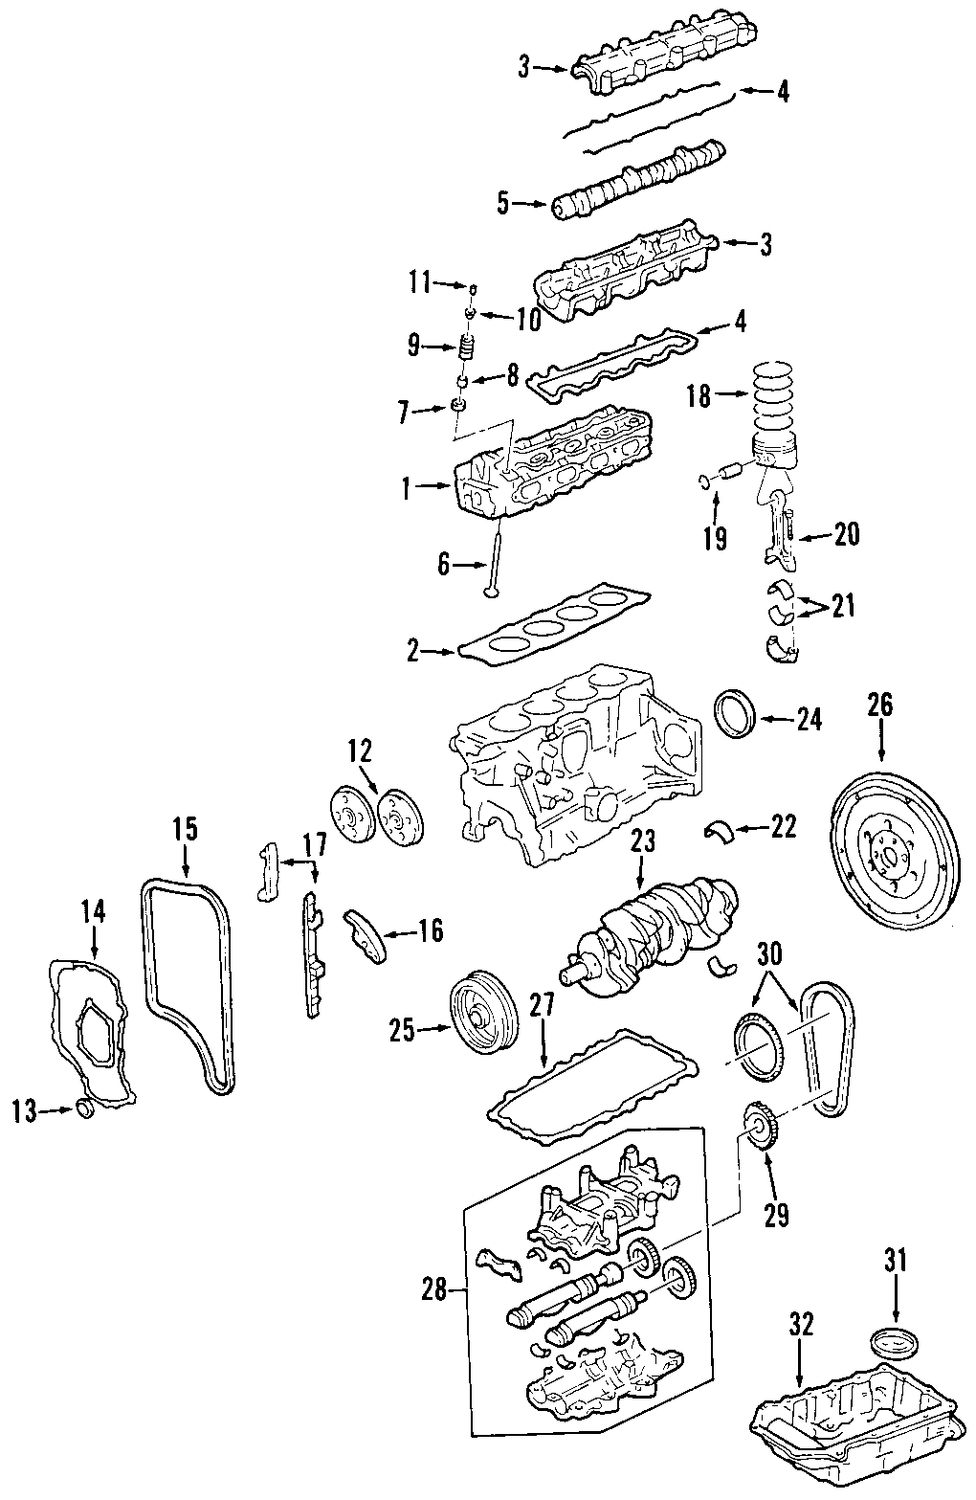 Browse A Sub Category To Buy Parts From This Is Not Real Site 200 Oldsmobile Alero Engine Diagram Genuine Trans Mount Old 22604369